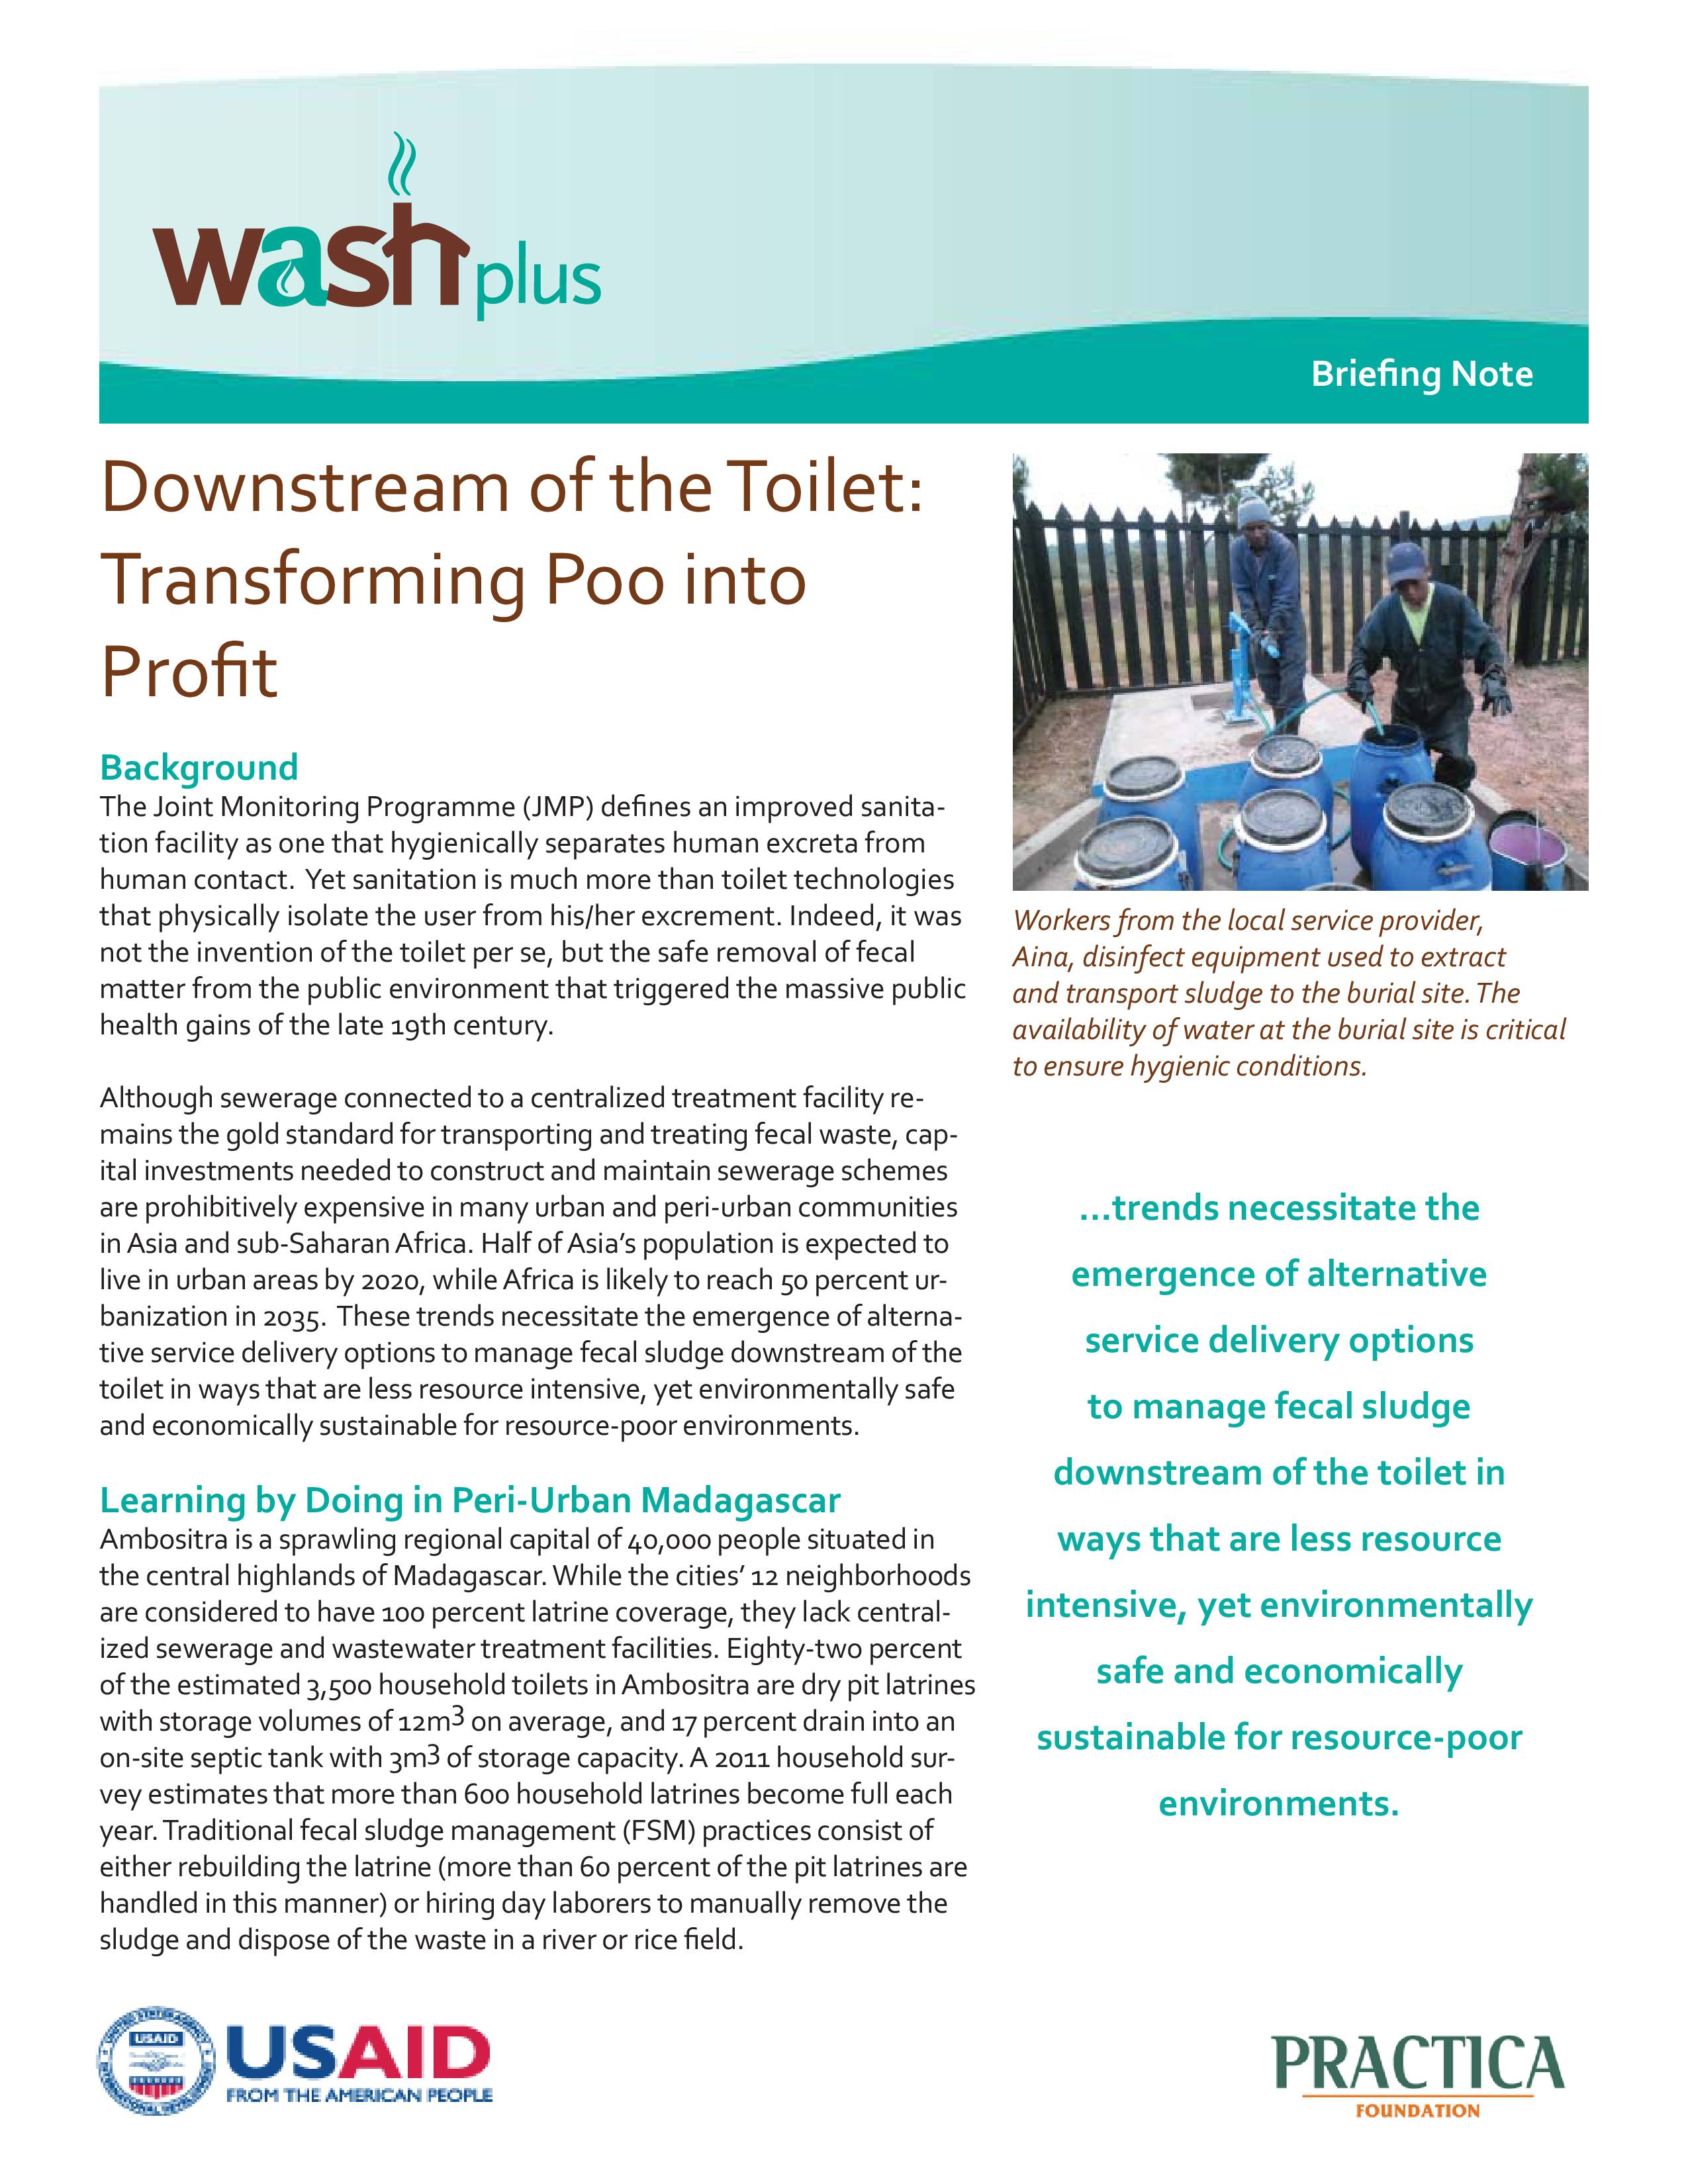 Downstream of the Toilet: Transforming Poo into Profit